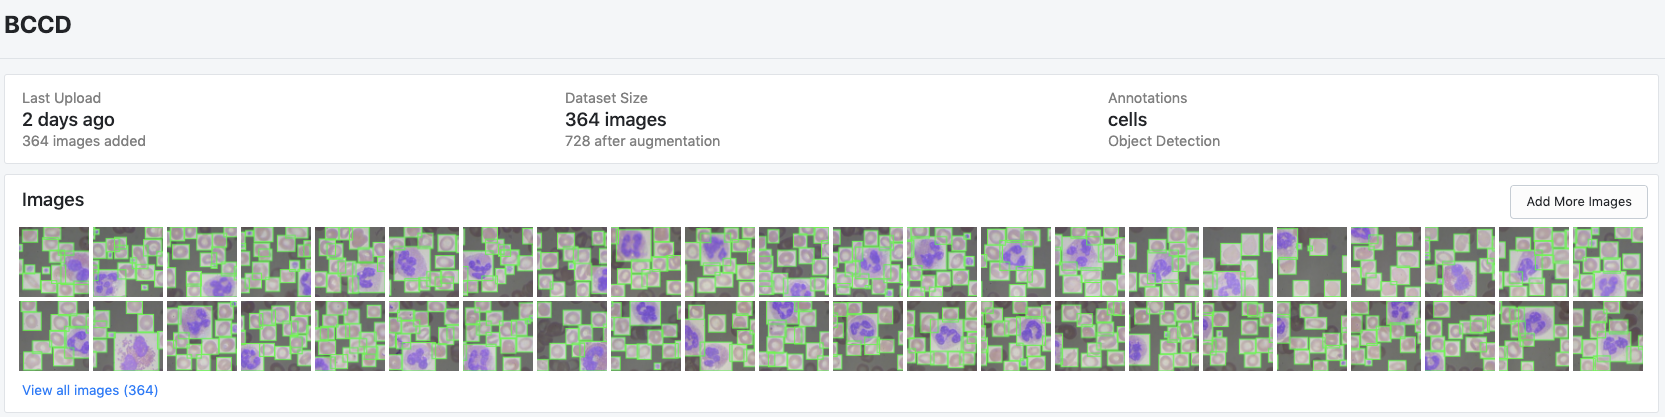 Roboflow Screenshot: BCCD dataset example images and overview statistics (last updated, dataset size, annotation info)